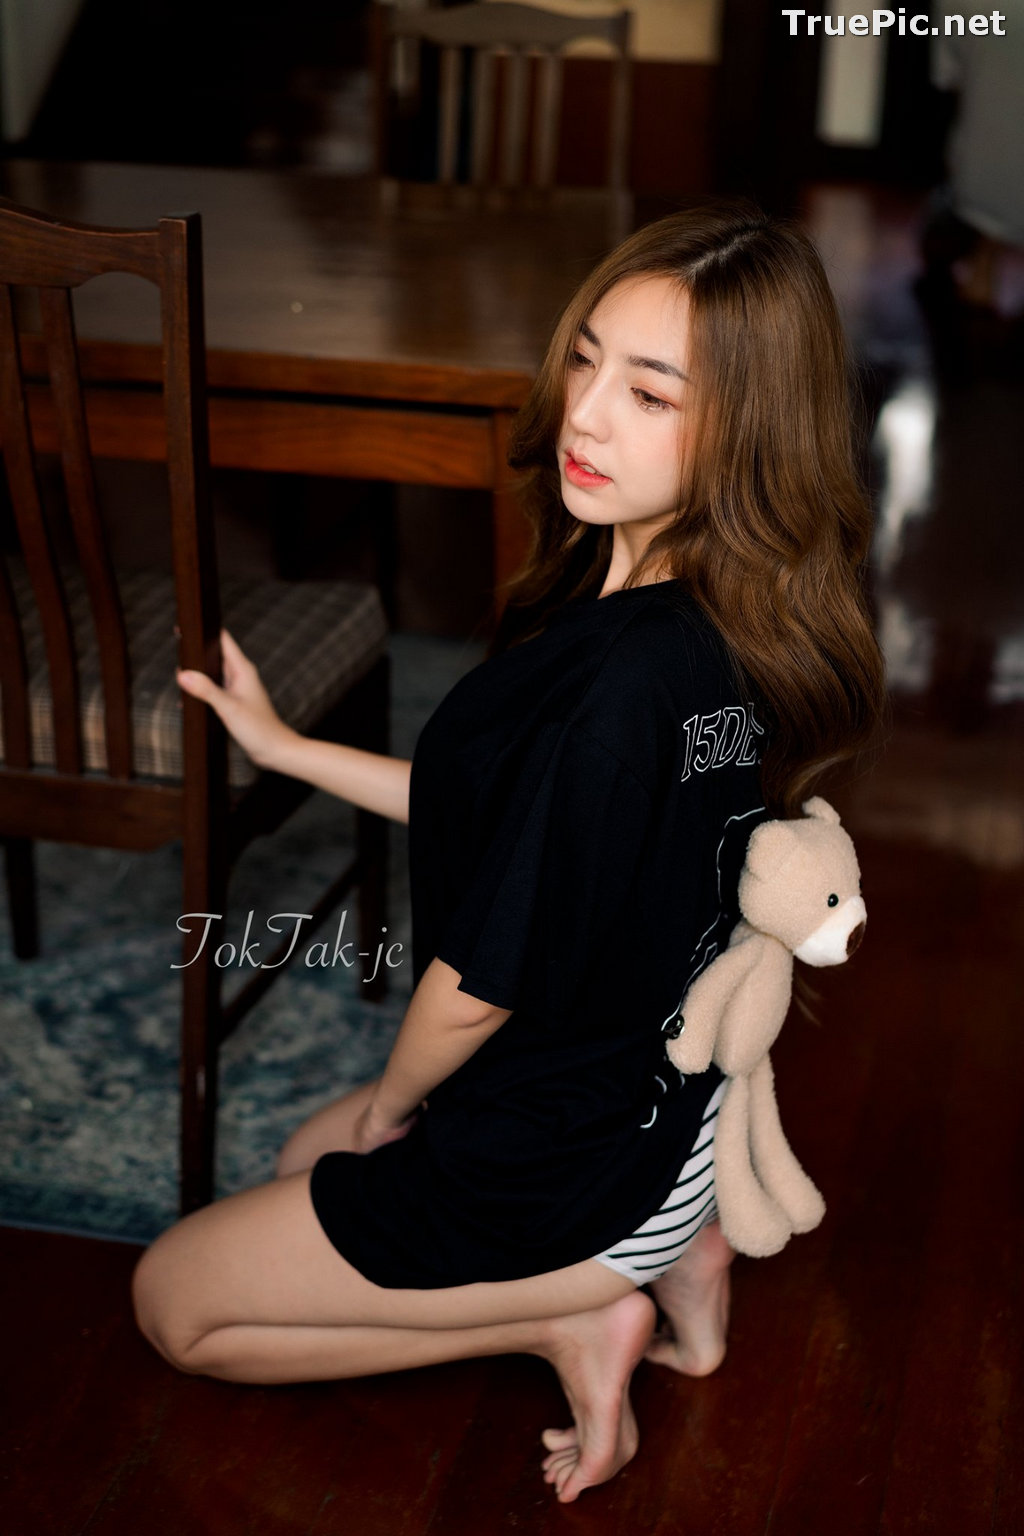 Image Thailand Model - Champ Phawida - Lovely Bear - TruePic.net - Picture-7